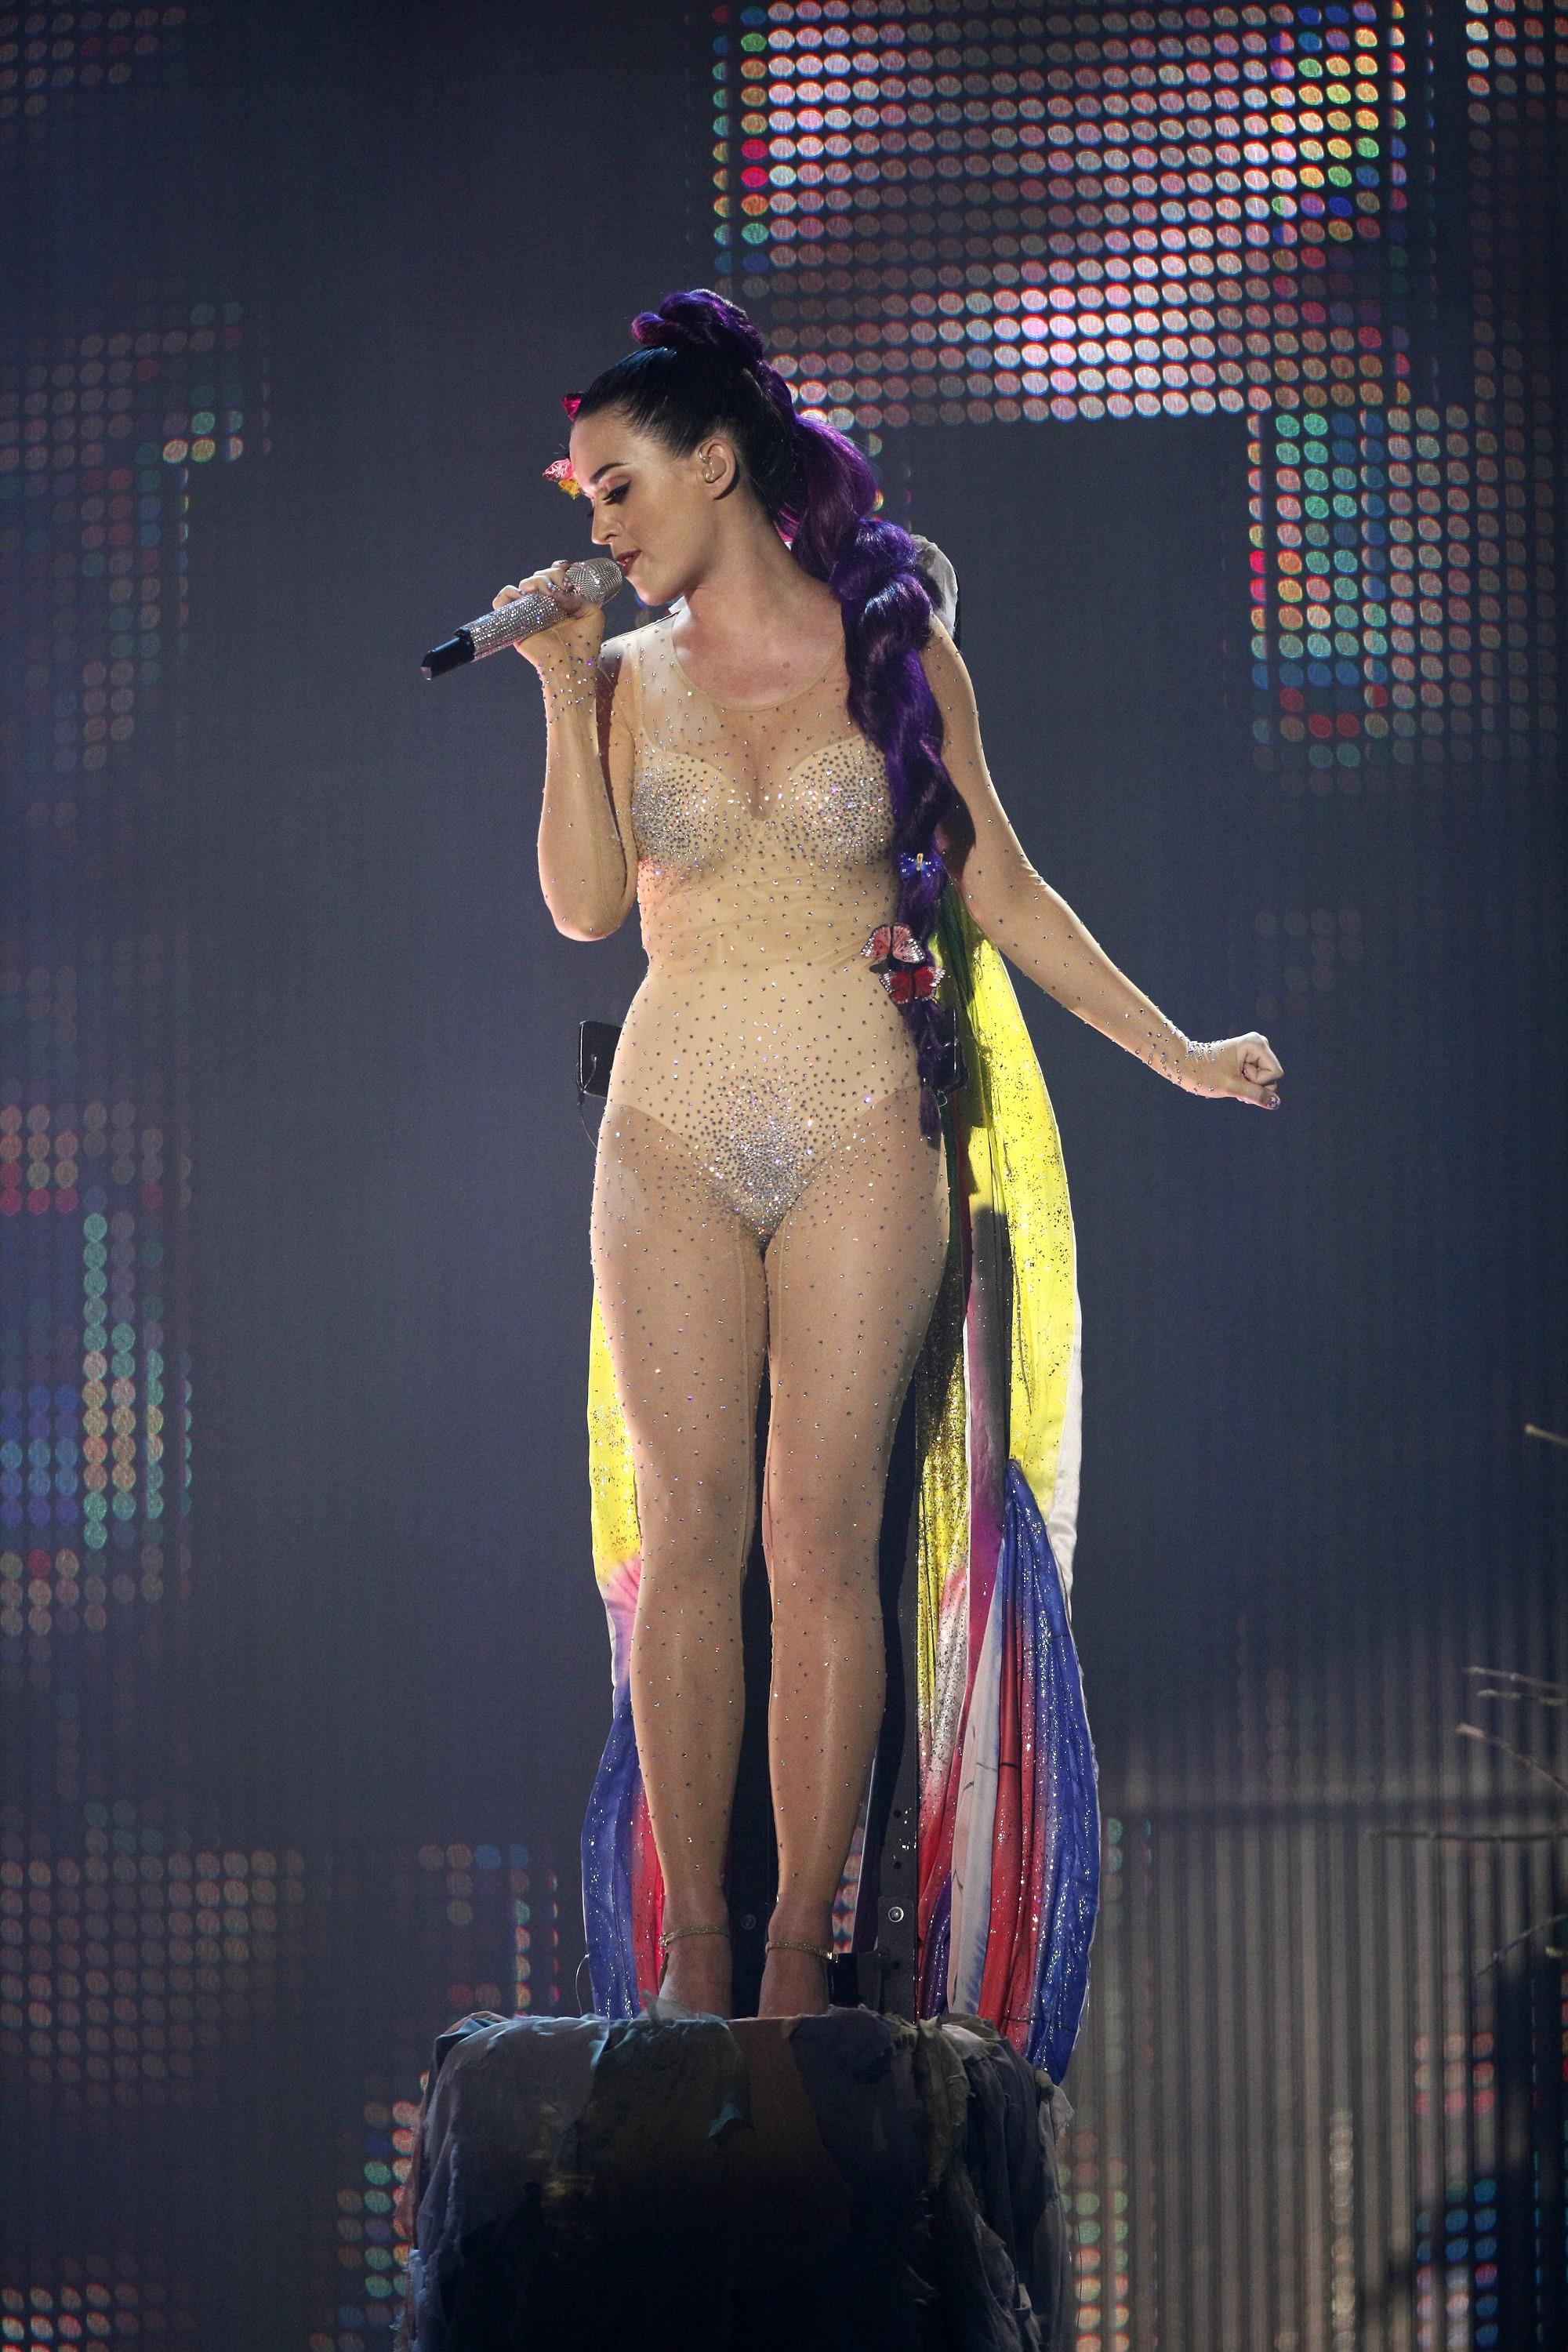 Katy Perry Hottest Video photo 24